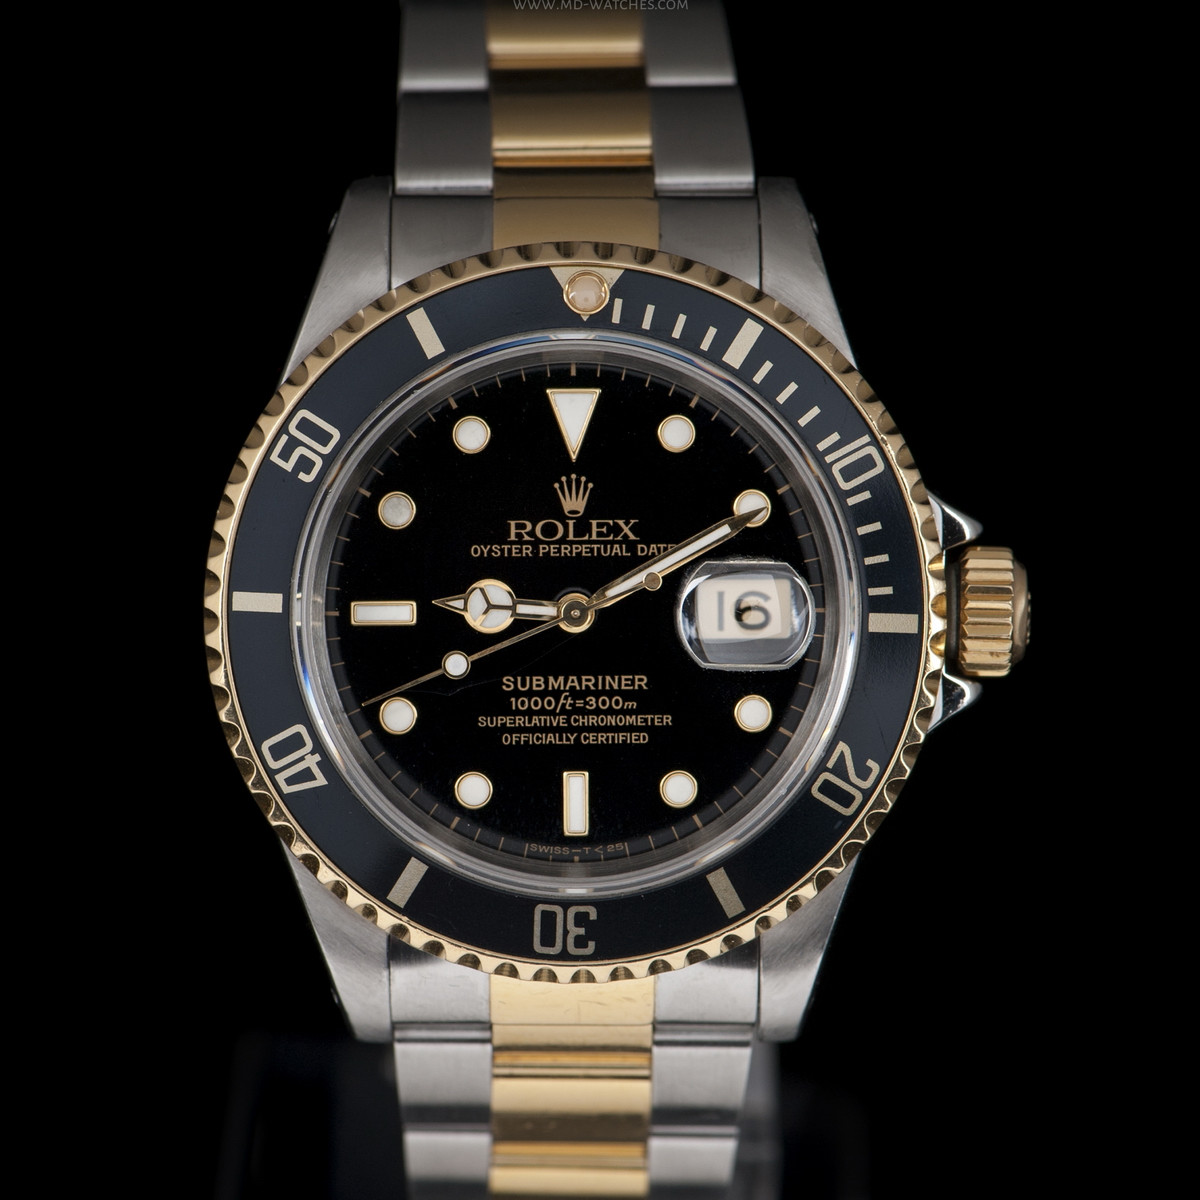 rolex submariner date ref 16613ln two tone gold steel 40mm md watches. Black Bedroom Furniture Sets. Home Design Ideas